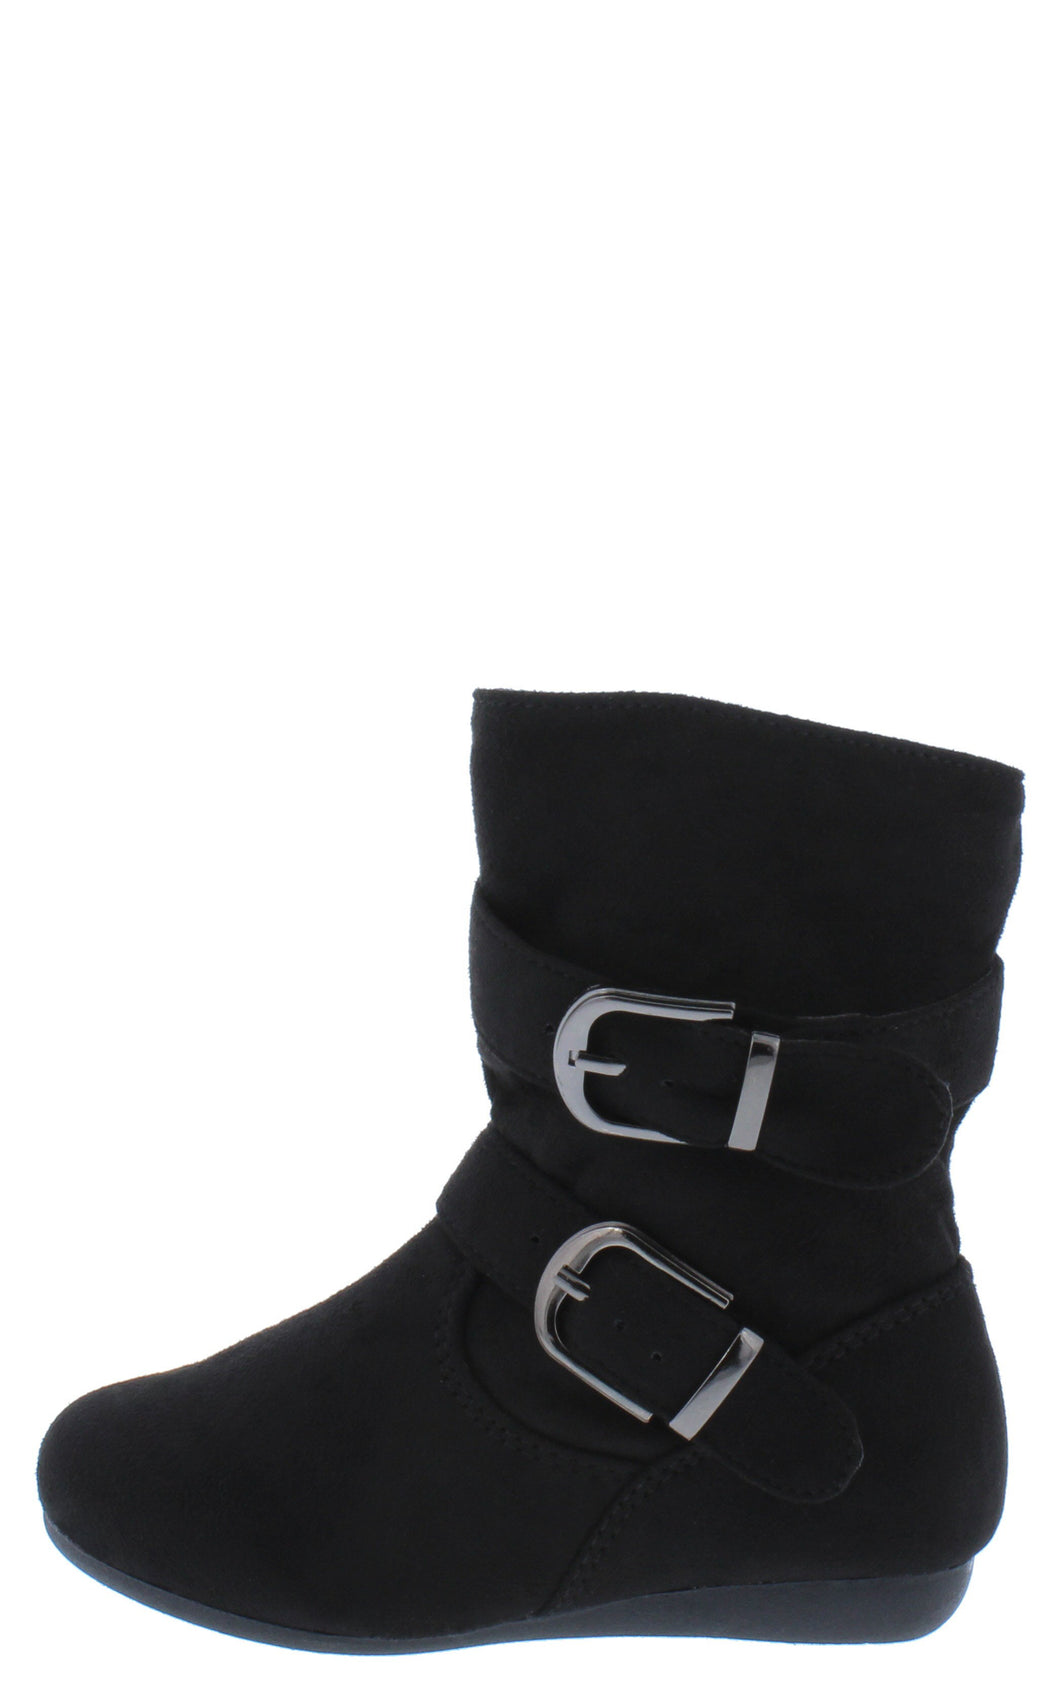 Rachel17k Black Slouchy Side Buckle Kids Ankle Boot - Wholesale Fashion Shoes ?id=18003152699436